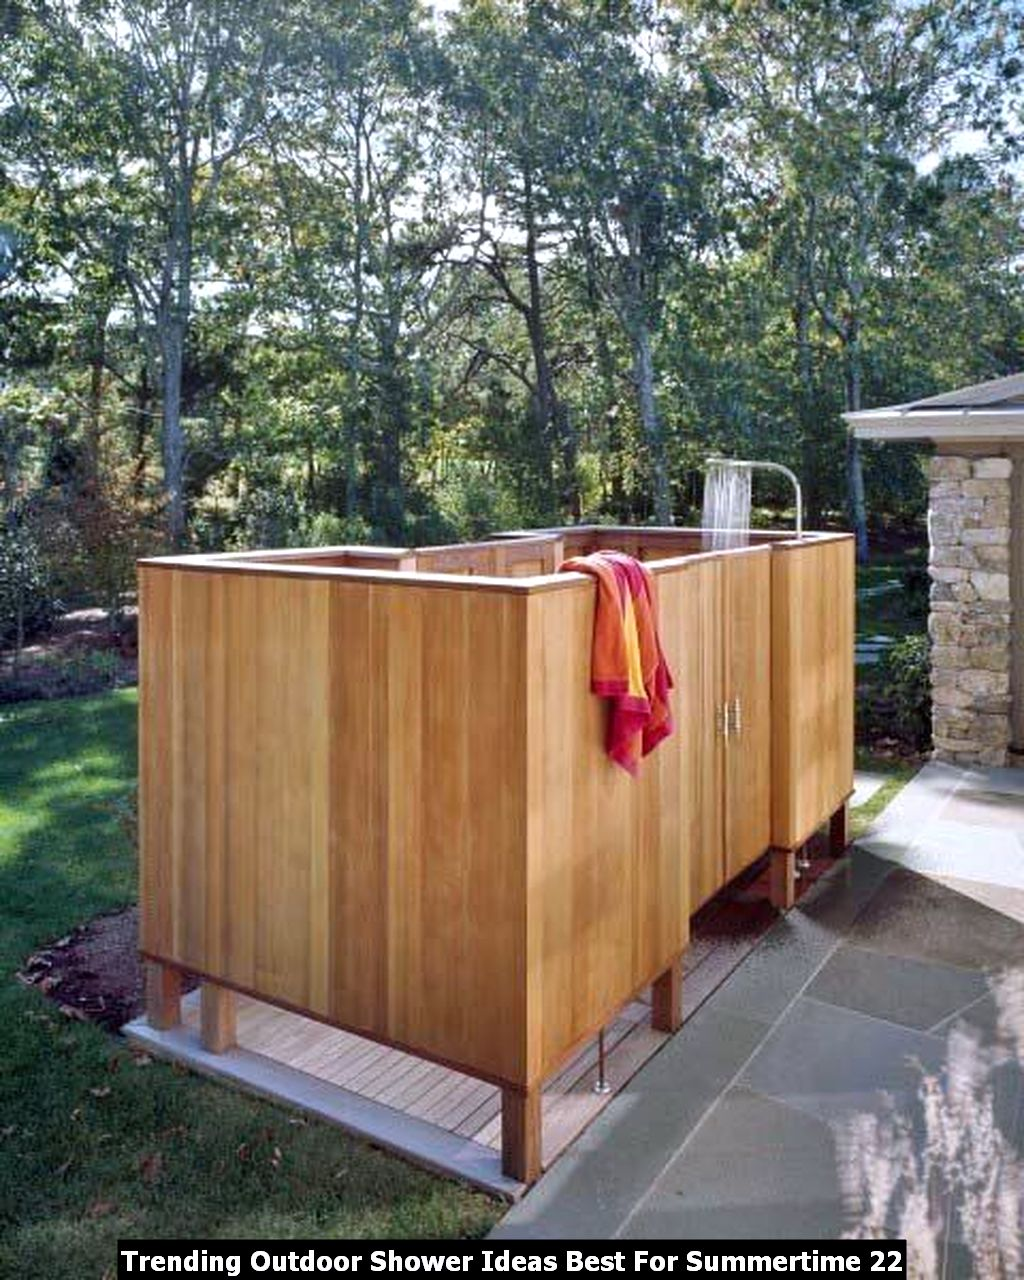 Trending Outdoor Shower Ideas Best For Summertime 22